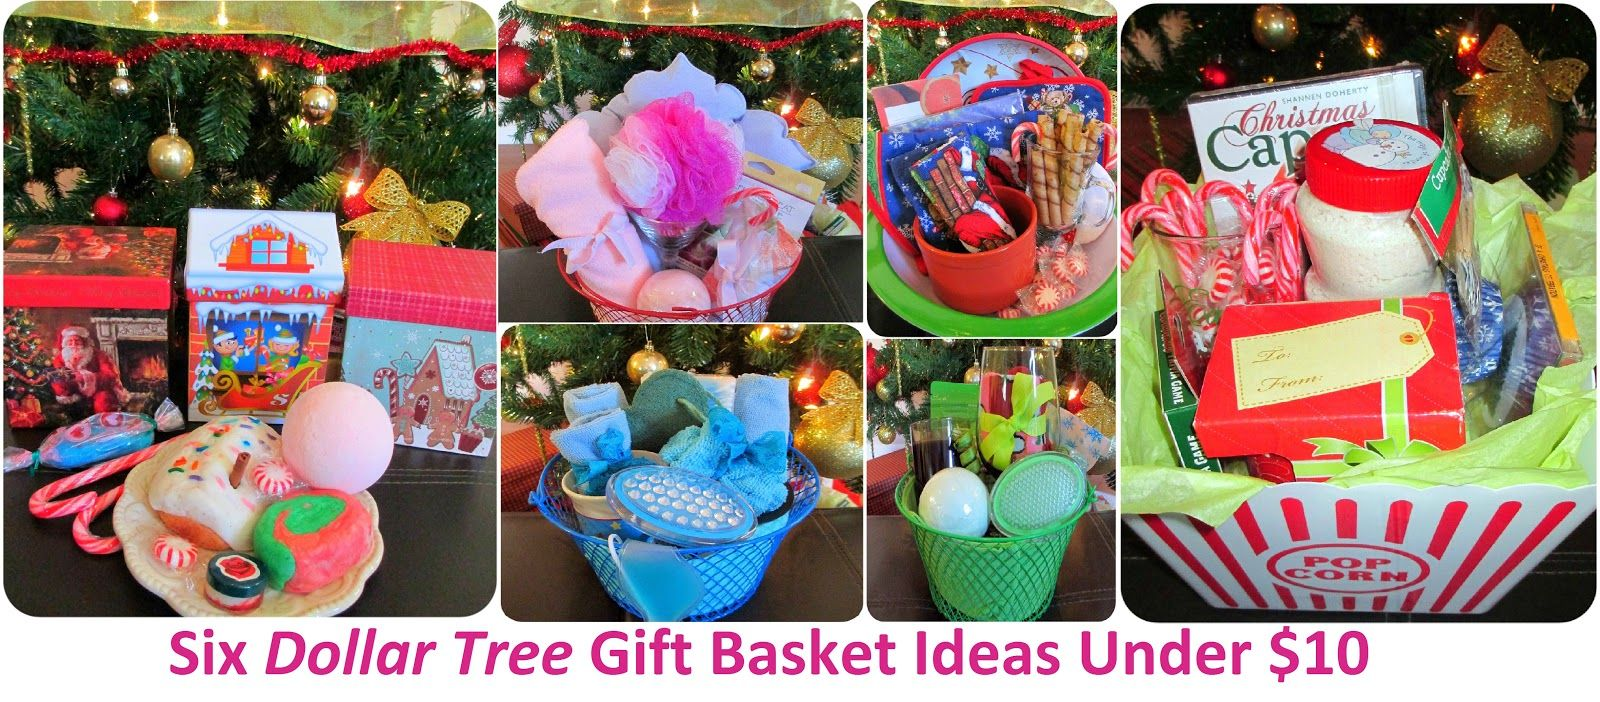 Pin By Amber Ligon On Homemade Gifts Homemade Christmas Gifts Dollar Store Gifts Cheap Gift Baskets